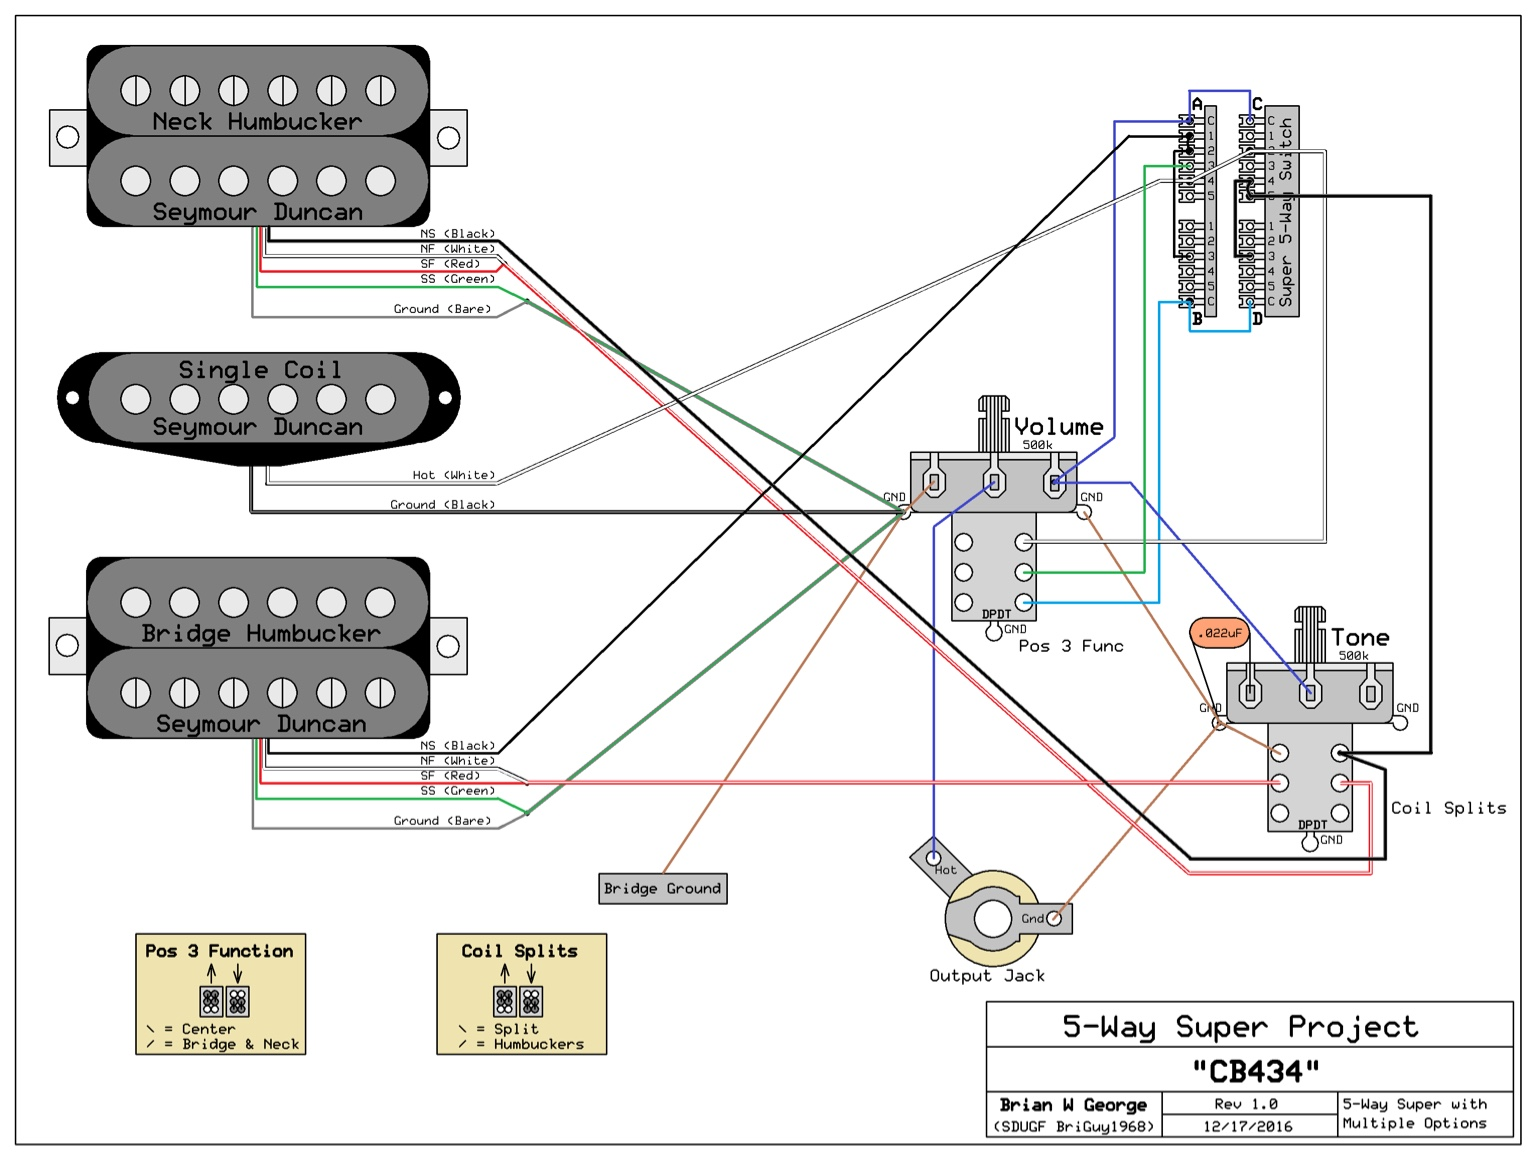 a7024281aee8ff80aea34674c25a2e48 5 way superswitch h s h advice steve vai wiring diagram at webbmarketing.co